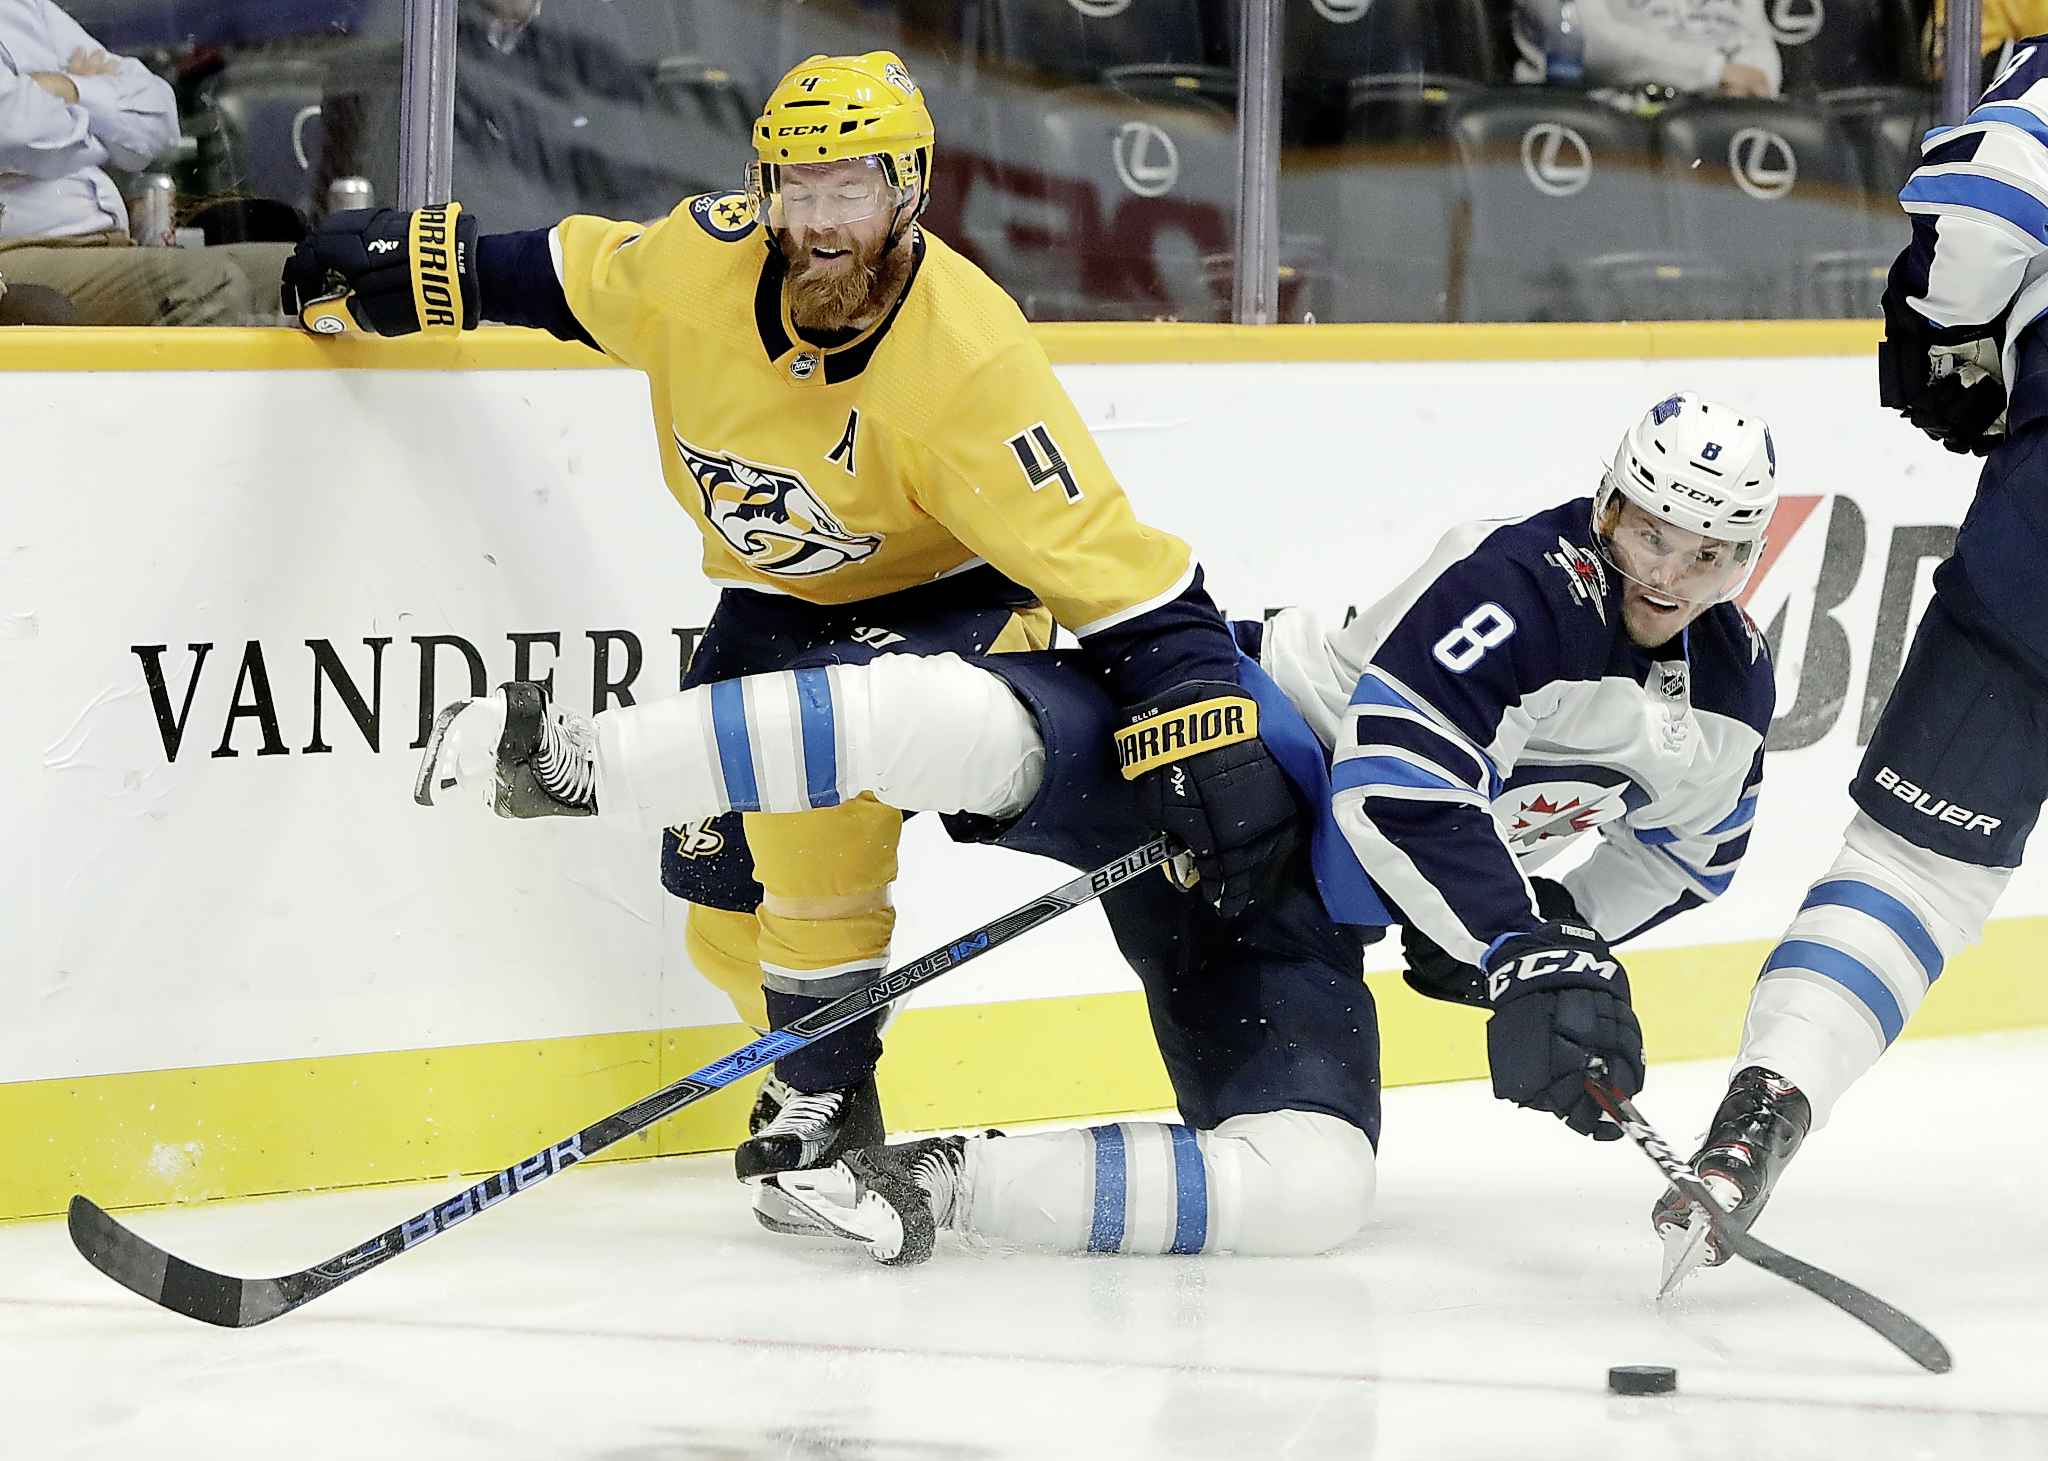 Jacob Trouba took three penalties against Nashville Thursday. (Mark Humphrey / The Associated Press)